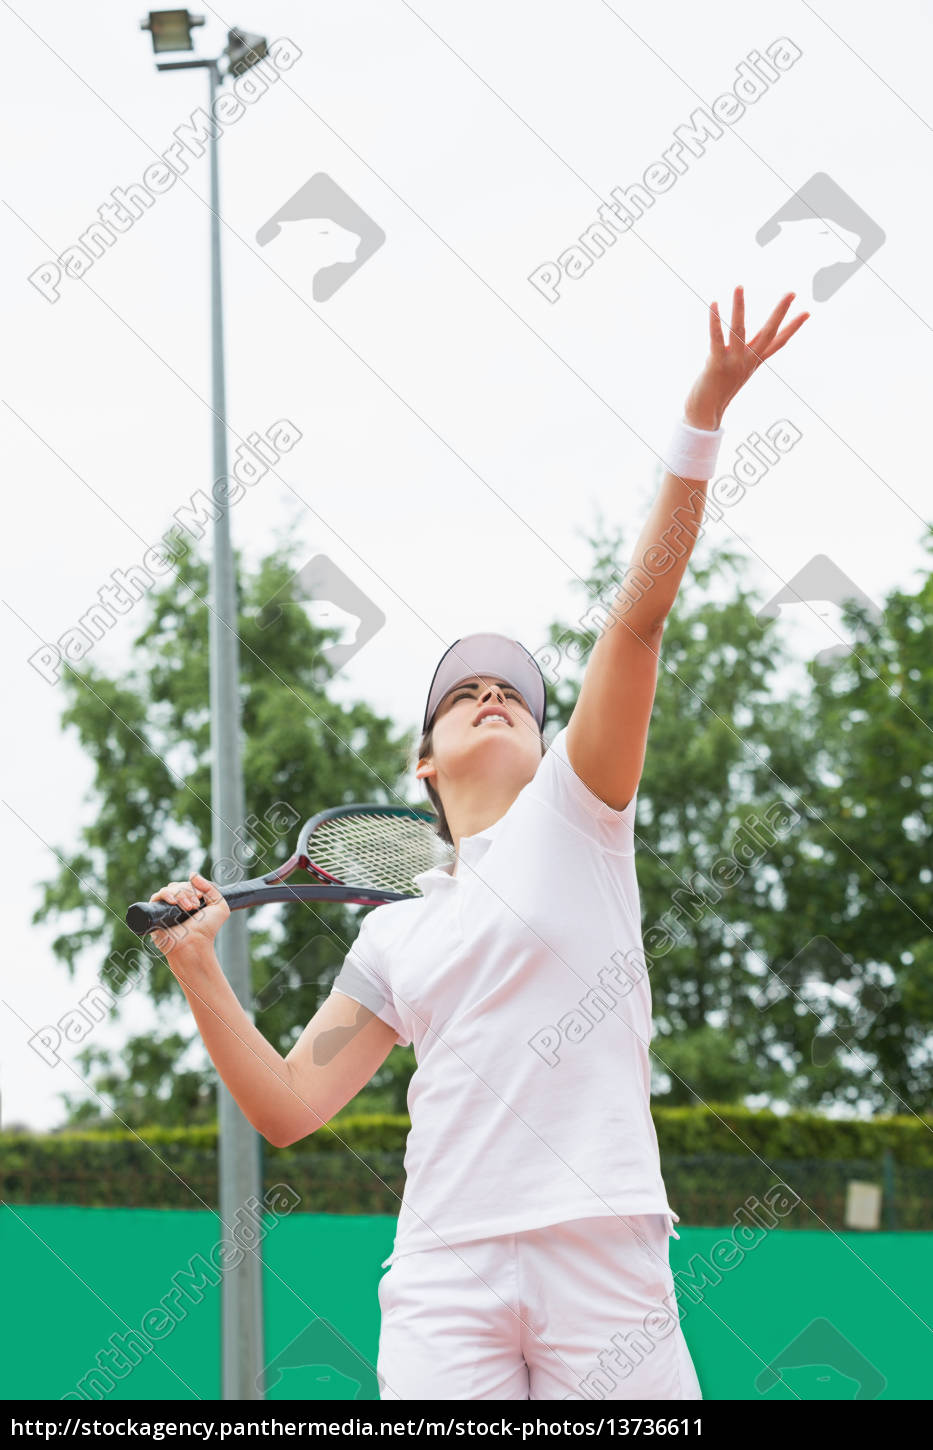 focused, tennis, player, serving, the, ball - 13736611